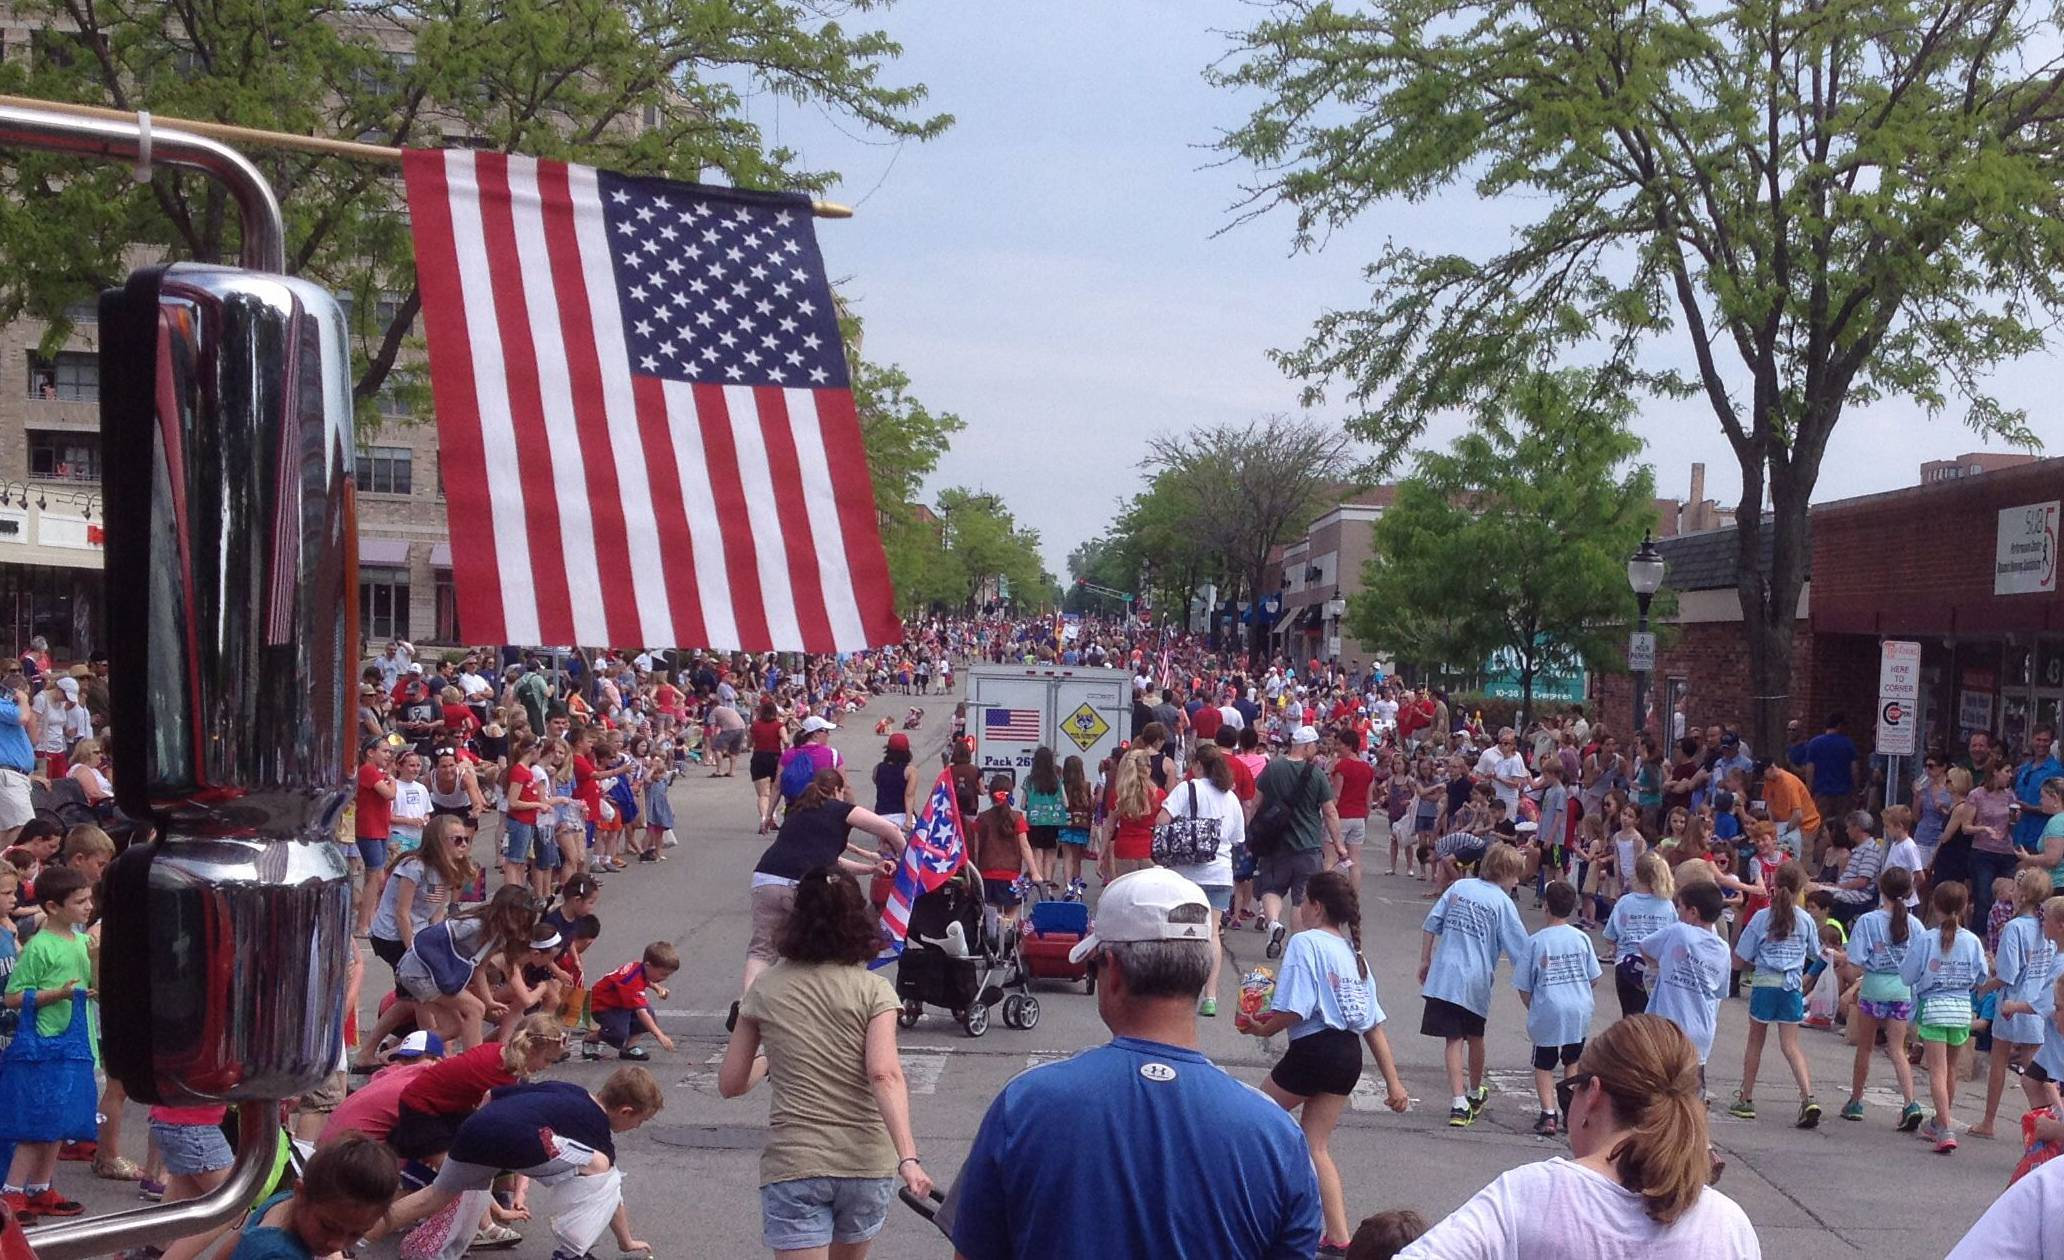 The Arlington Heights Memorial Day parade on Monday as it moves up Dunton Ave.